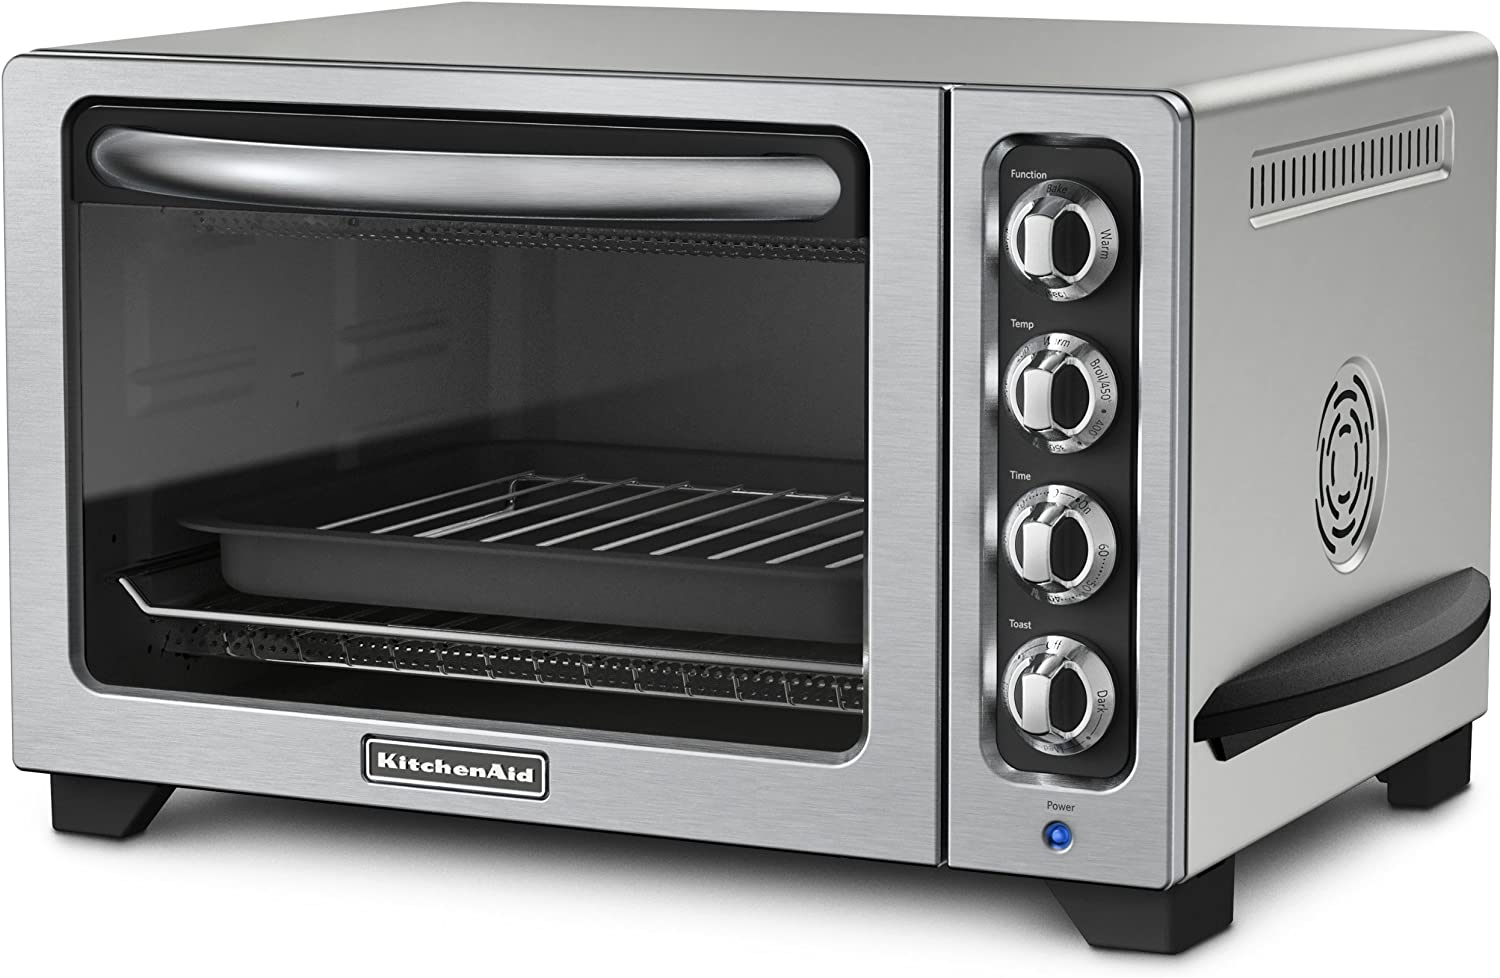 Amazon Com Kitchenaid Kco223cu 12 Inch Convection Countertop Oven With Silver Handle Contour Silver Toaster Ovens Kitchen Dining